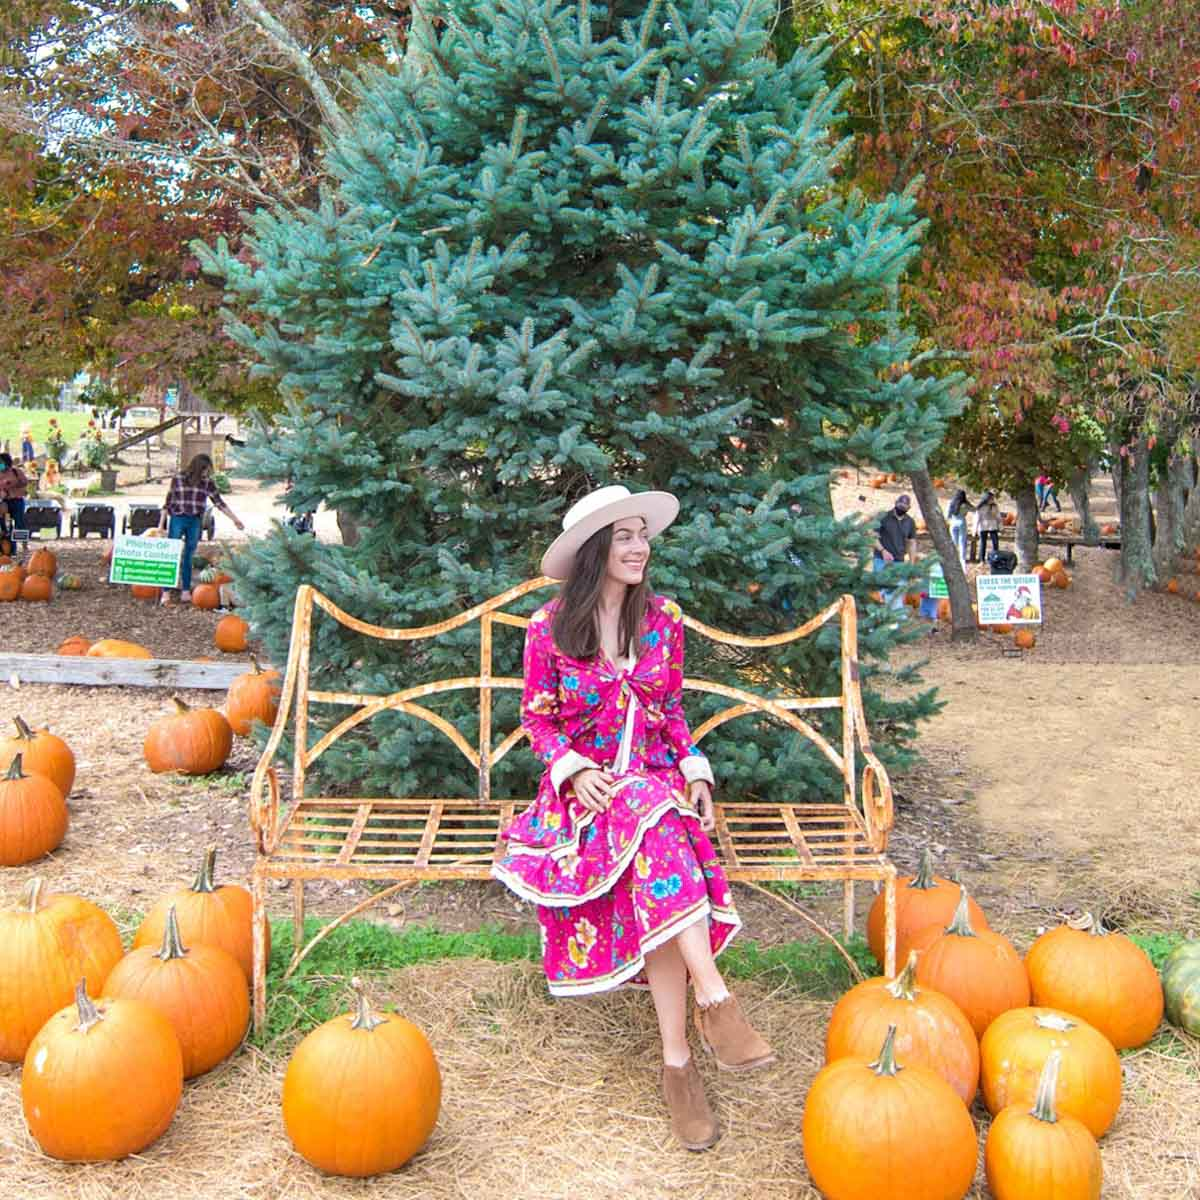 Woman sitting on bench in front of pumpkin patch